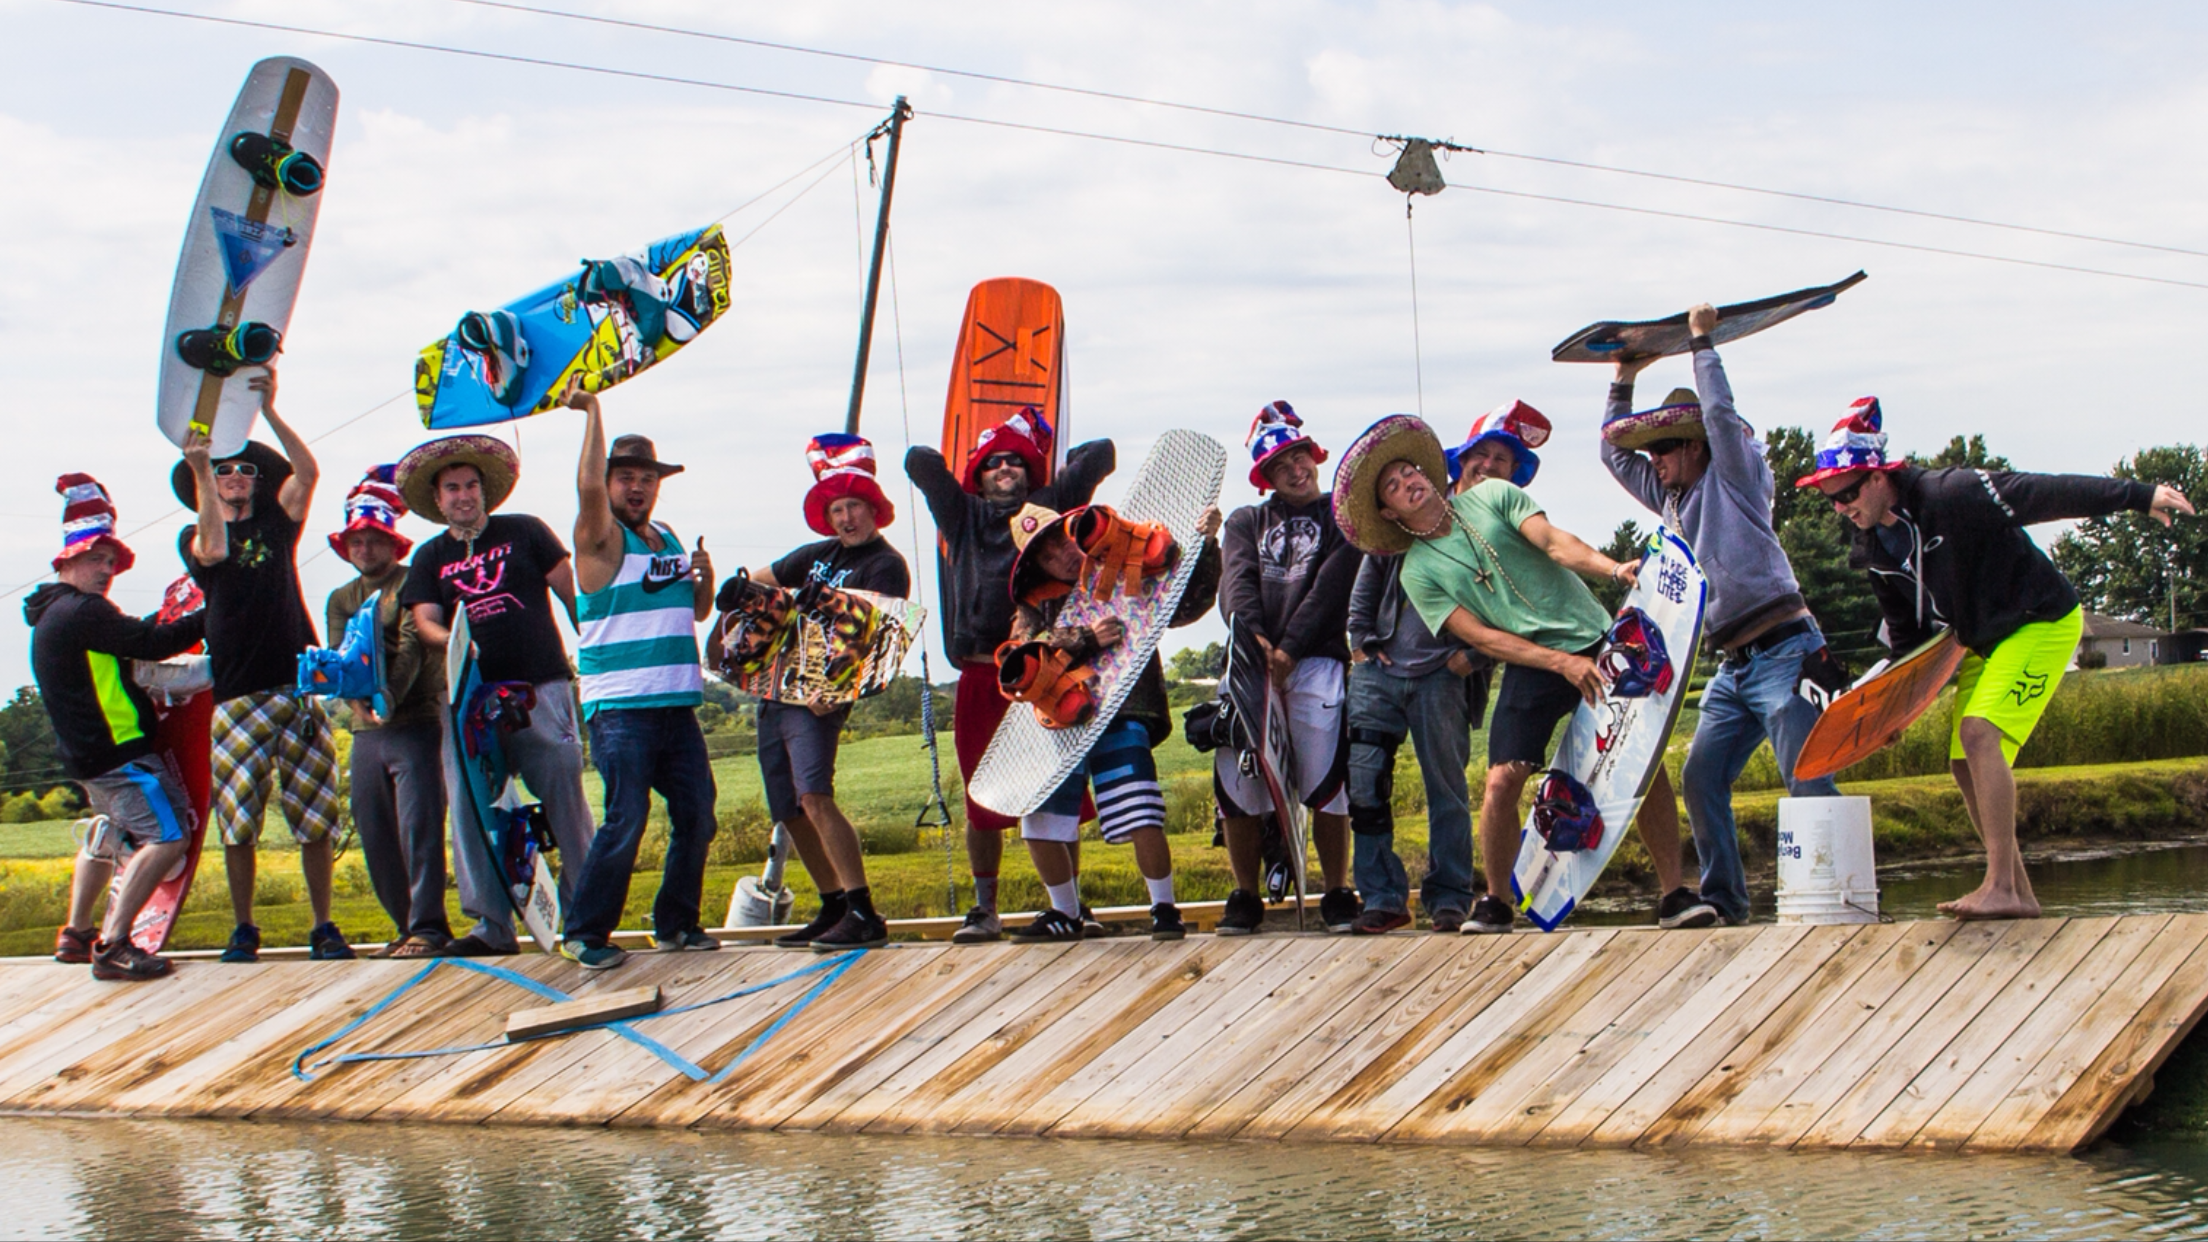 Bachelor Party: Wakeboard Style